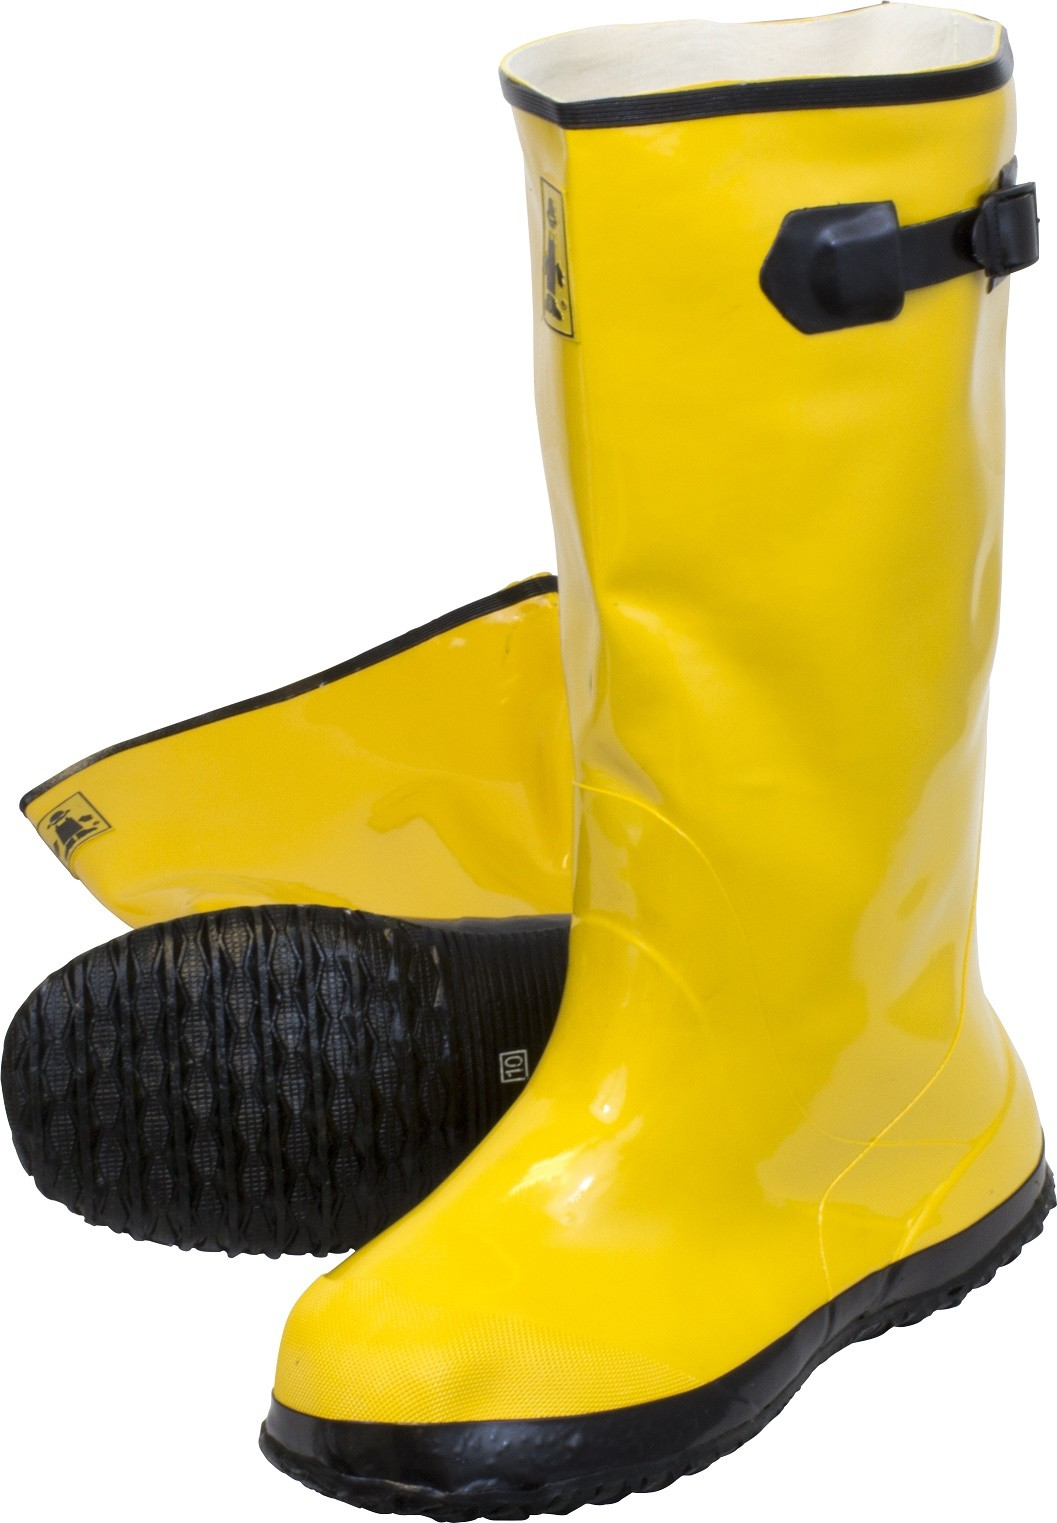 Yellow Slush Boots, Sold by the Pair, Size 12